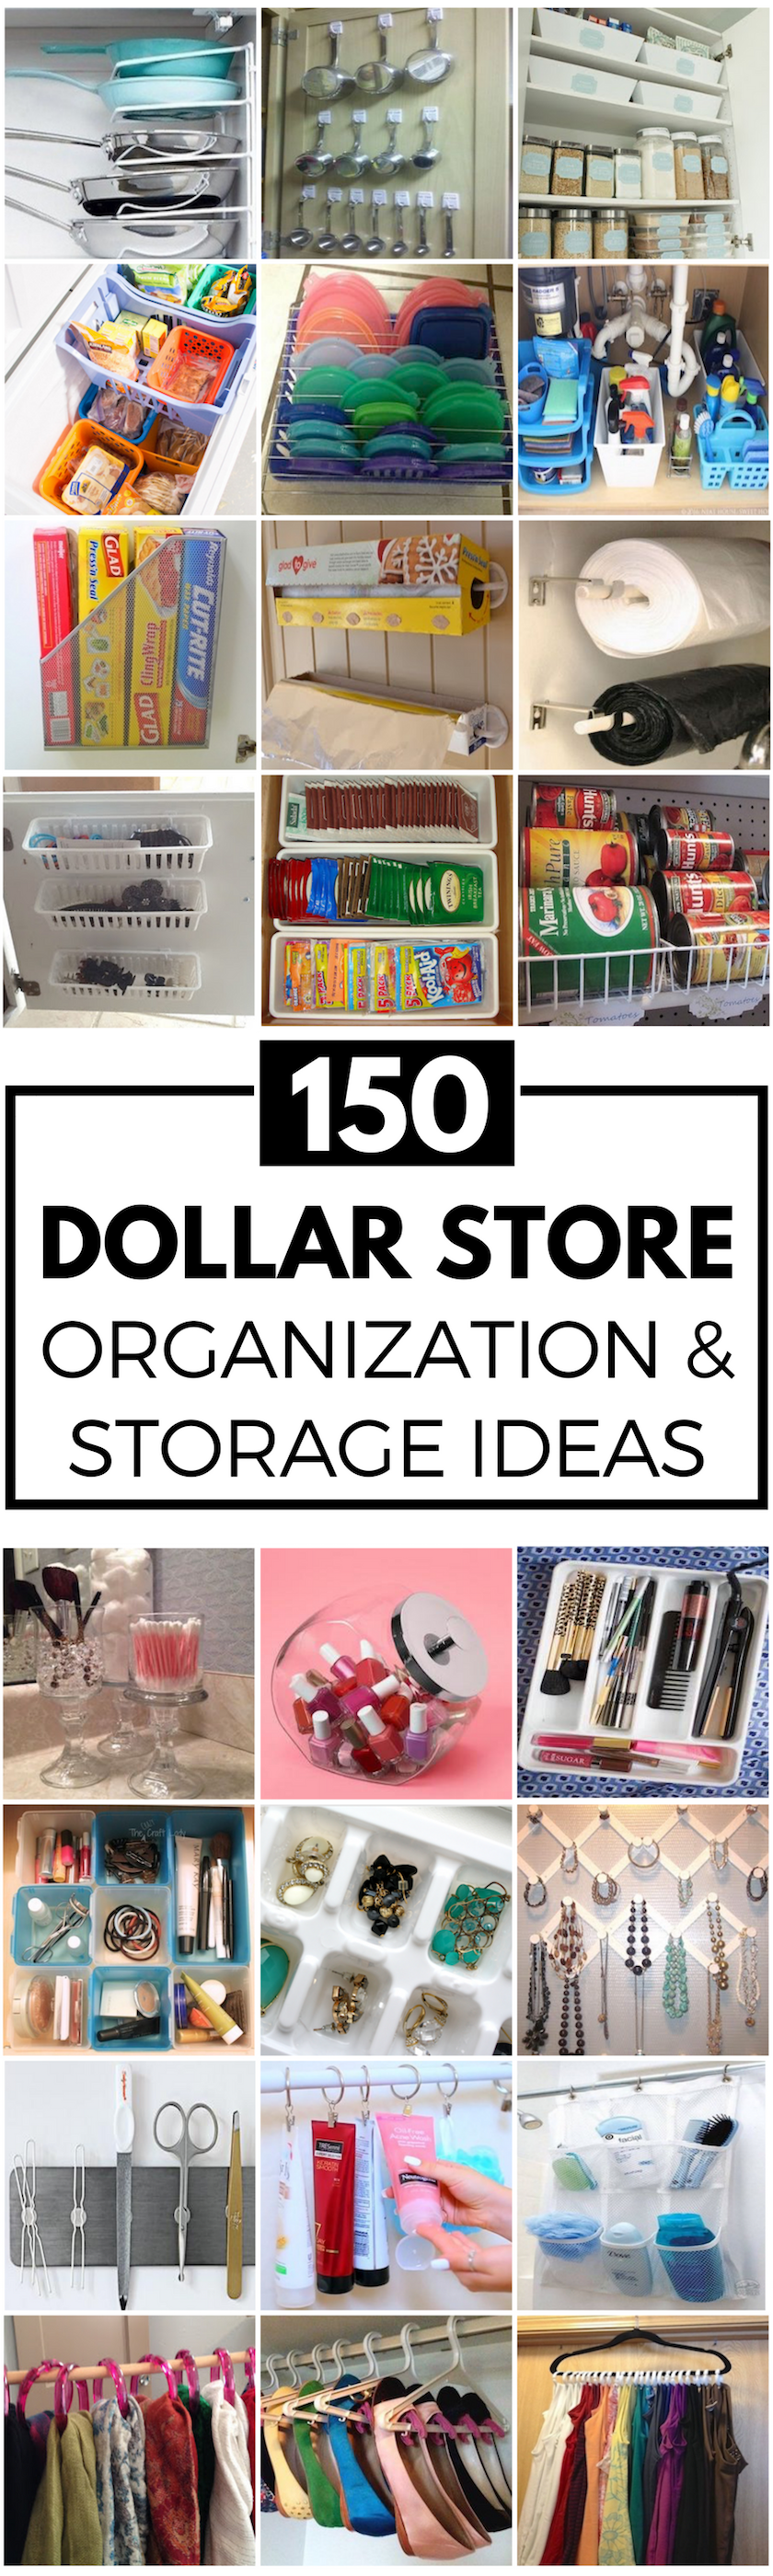 150 diy dollar store organization and storage ideas Small home organization